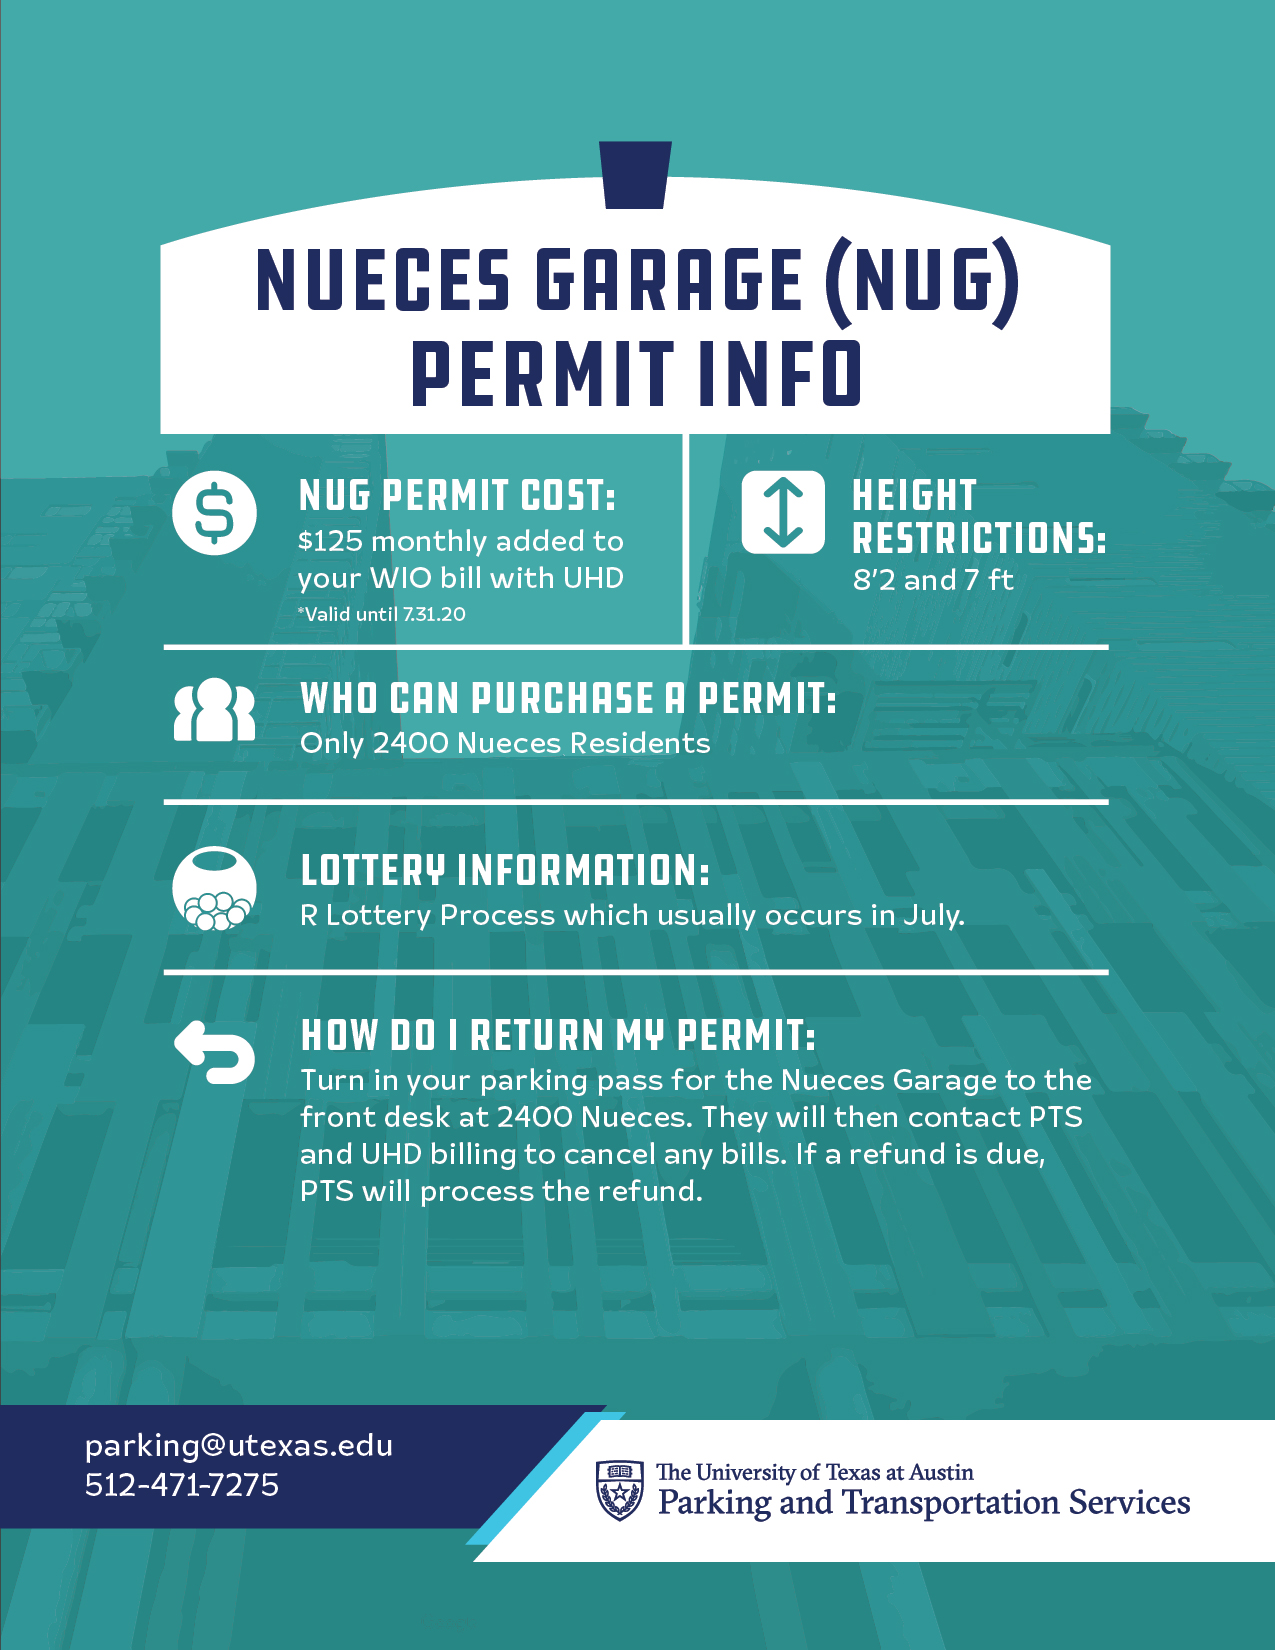 Nueces Garage permit info